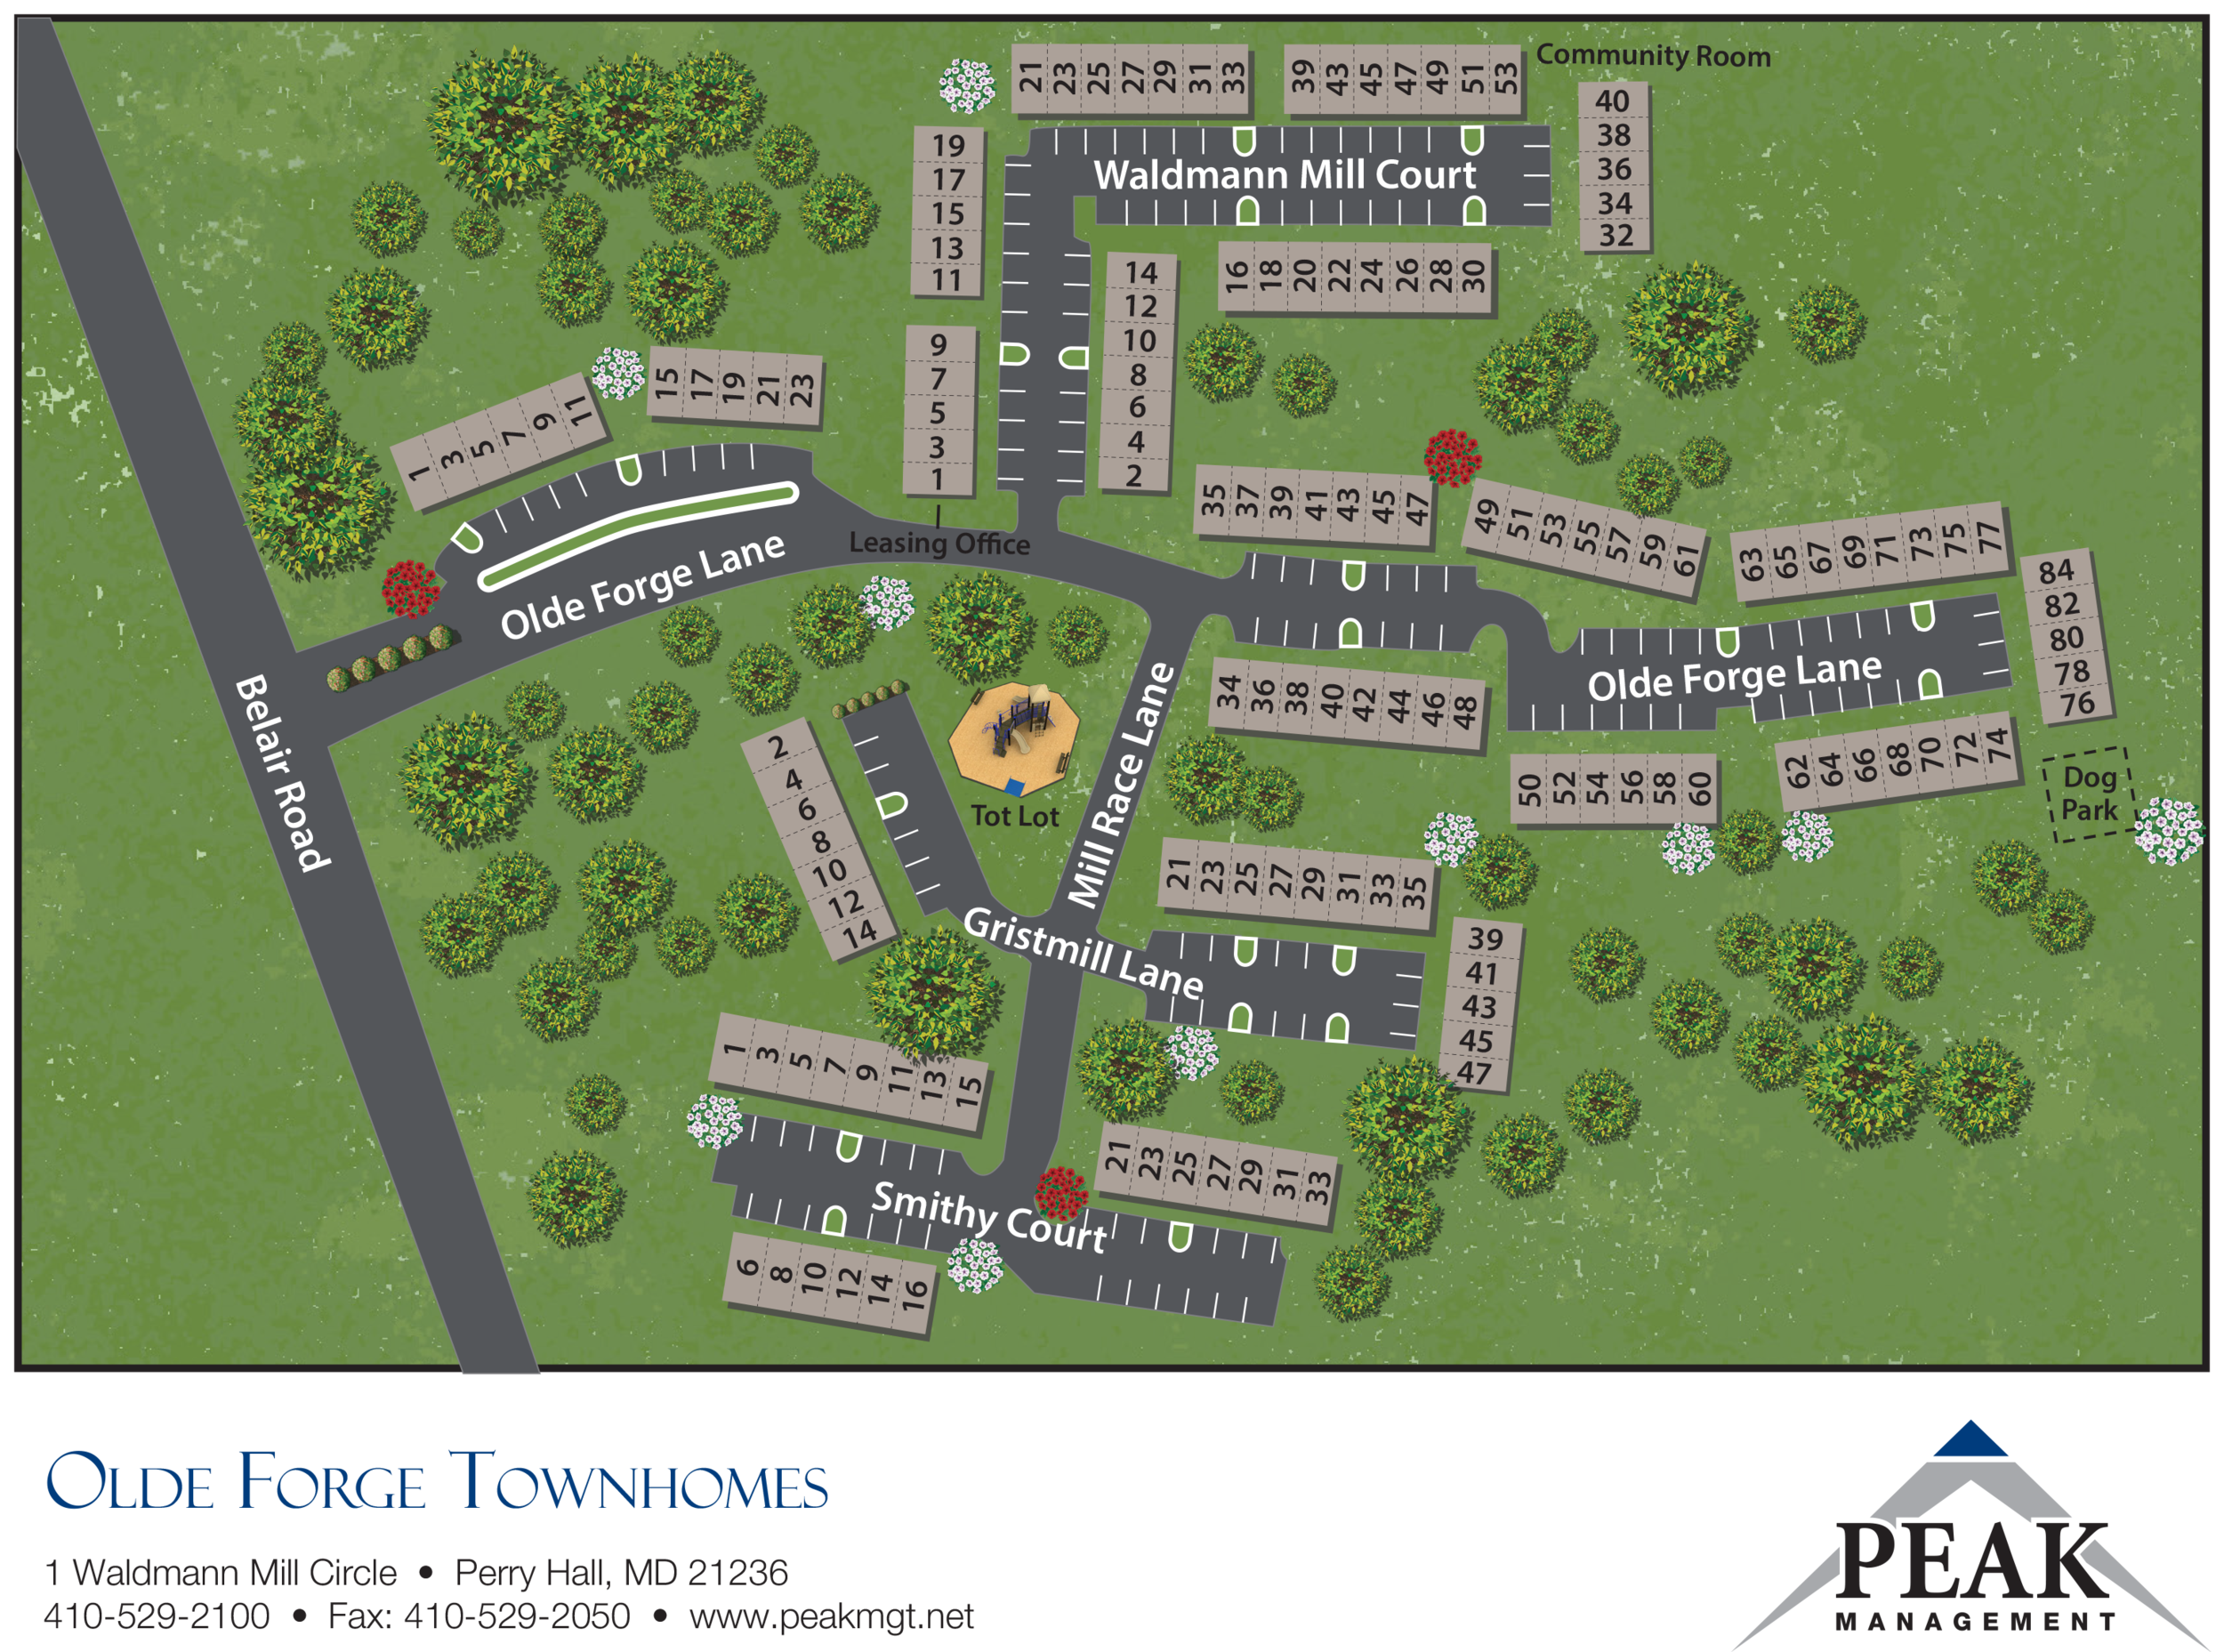 Olde Forge Townhomes - Perry Hall, MD Site Map